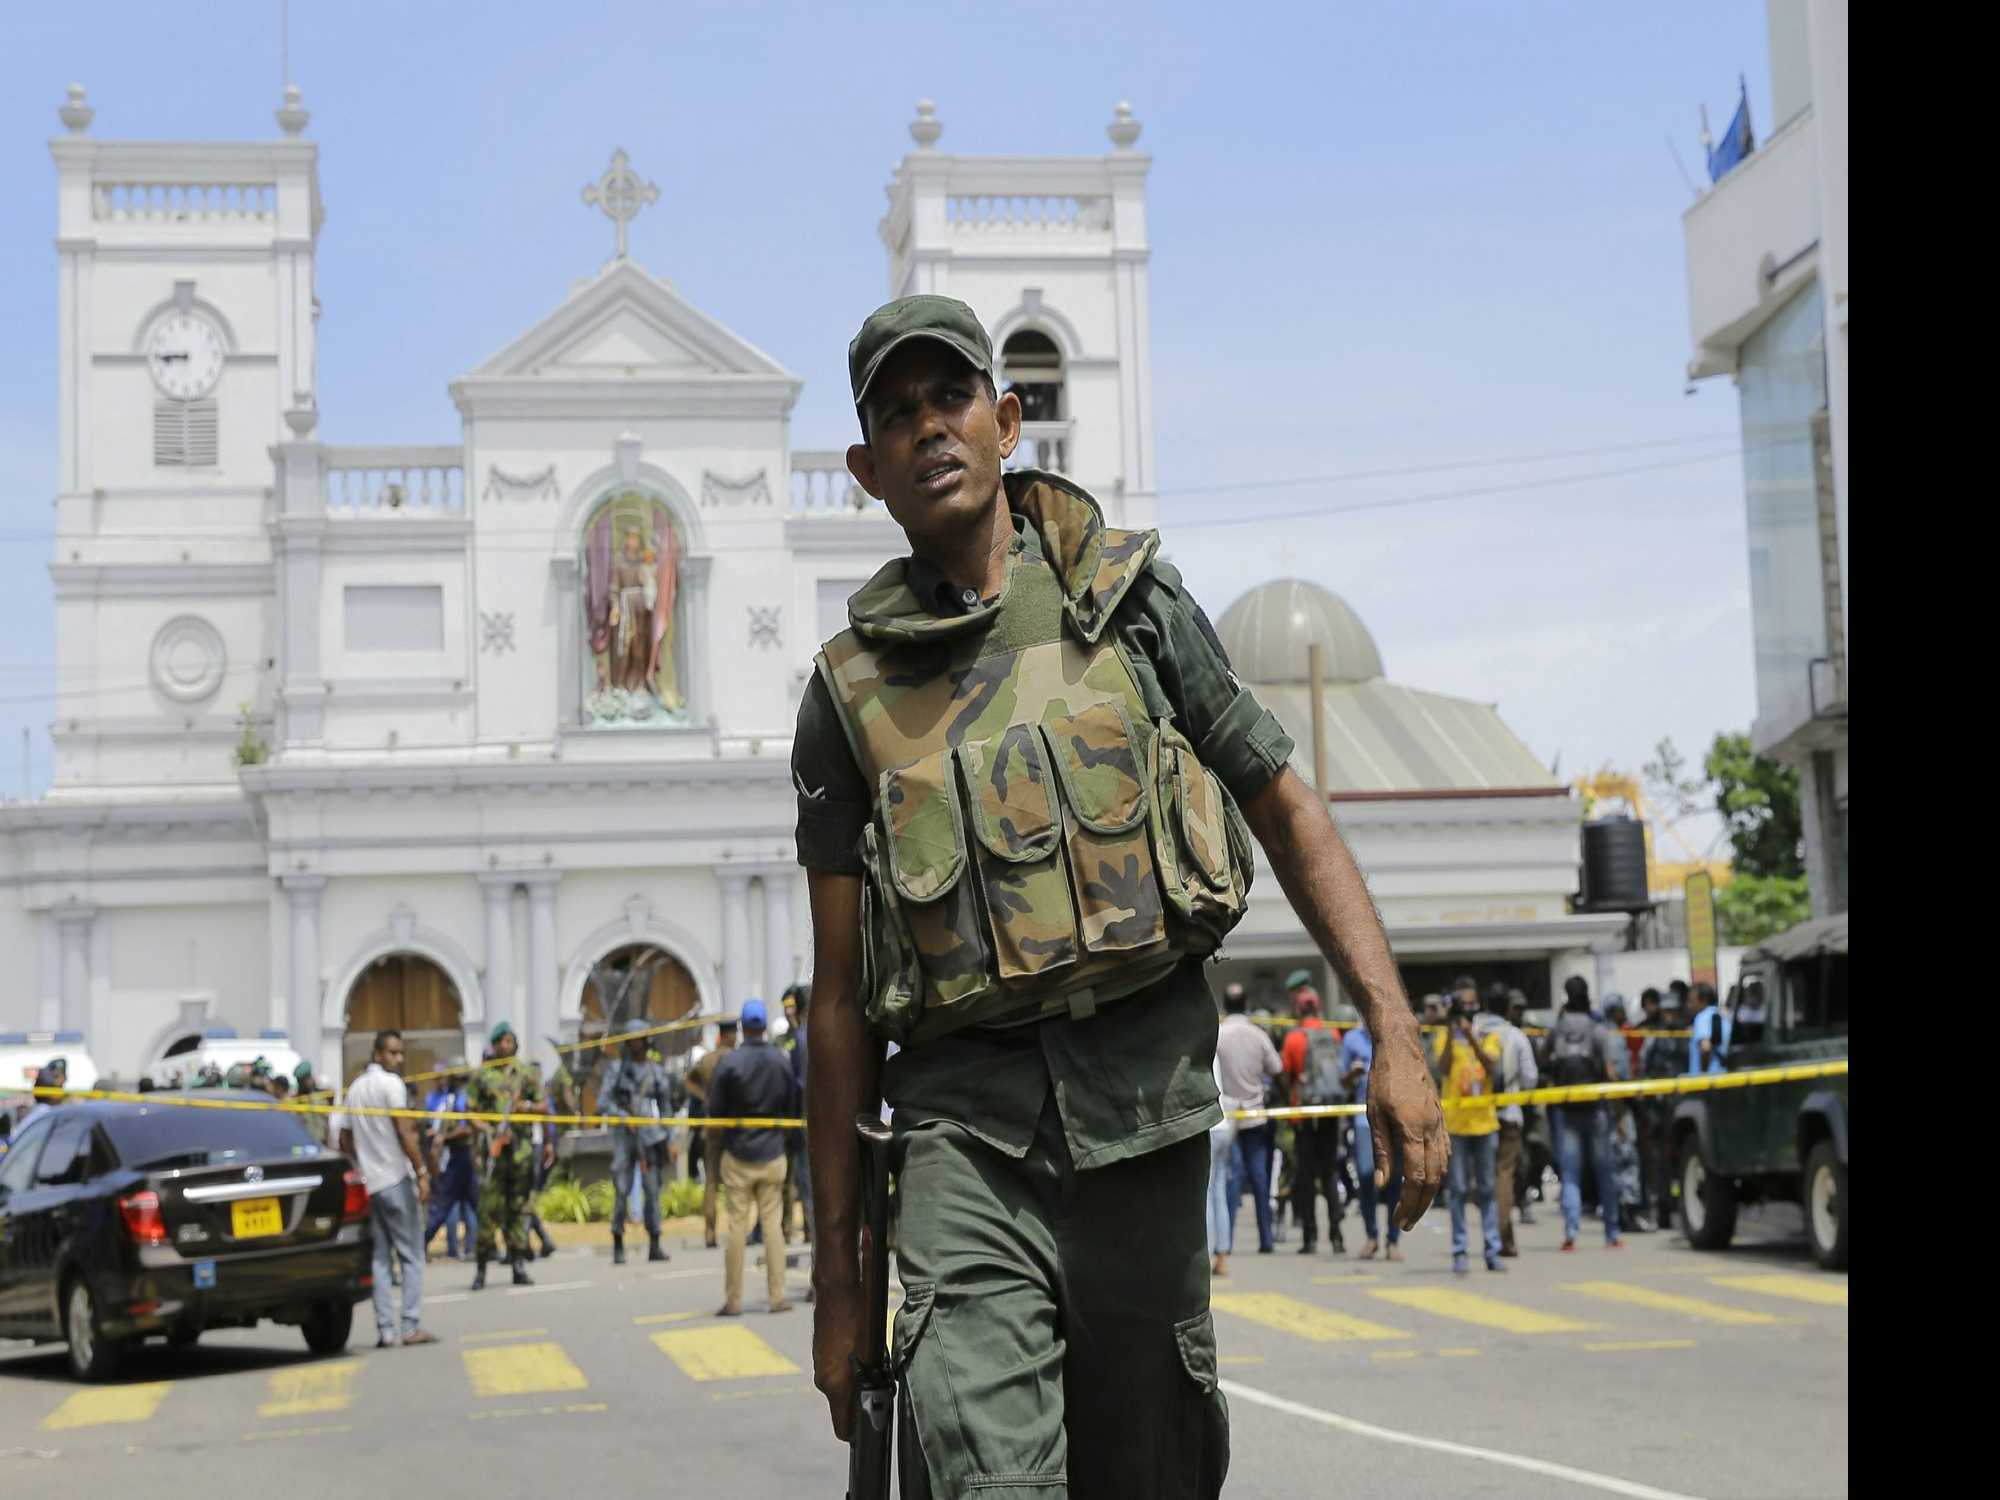 Explosions Kill at Least 30 in Sri Lanka on Easter Sunday